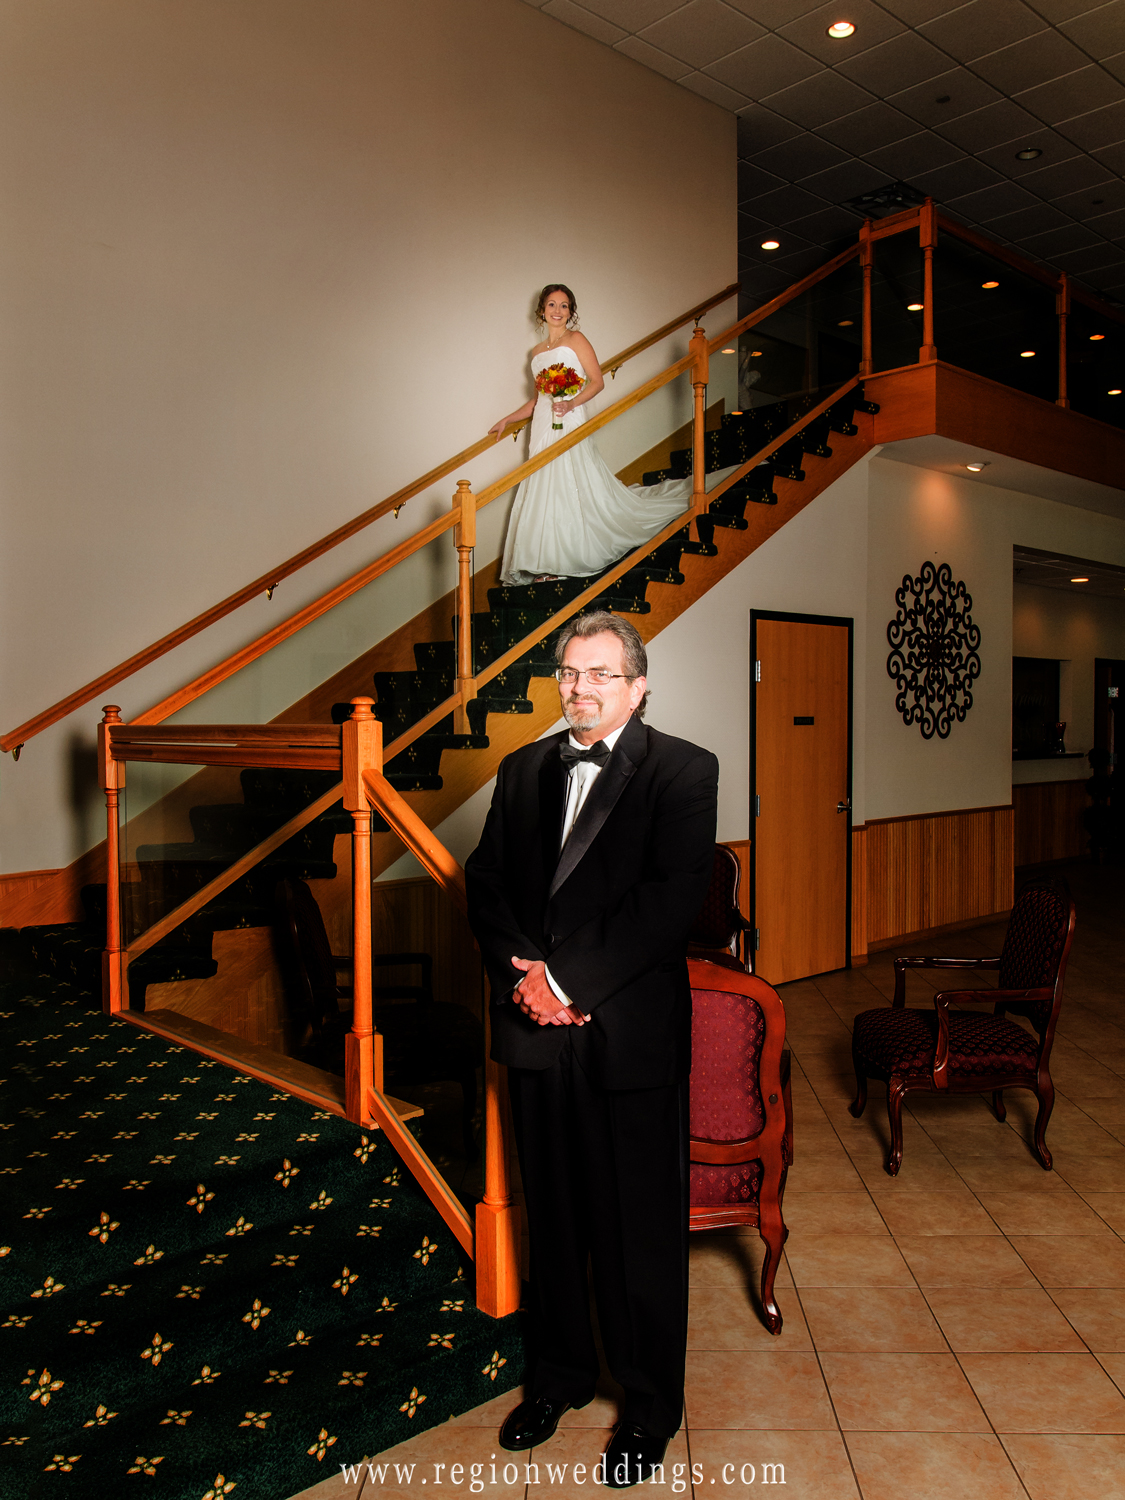 A father awaits his daughter, the bride, for his first look at the bottom of the staircase at The Patrician banquet hall.